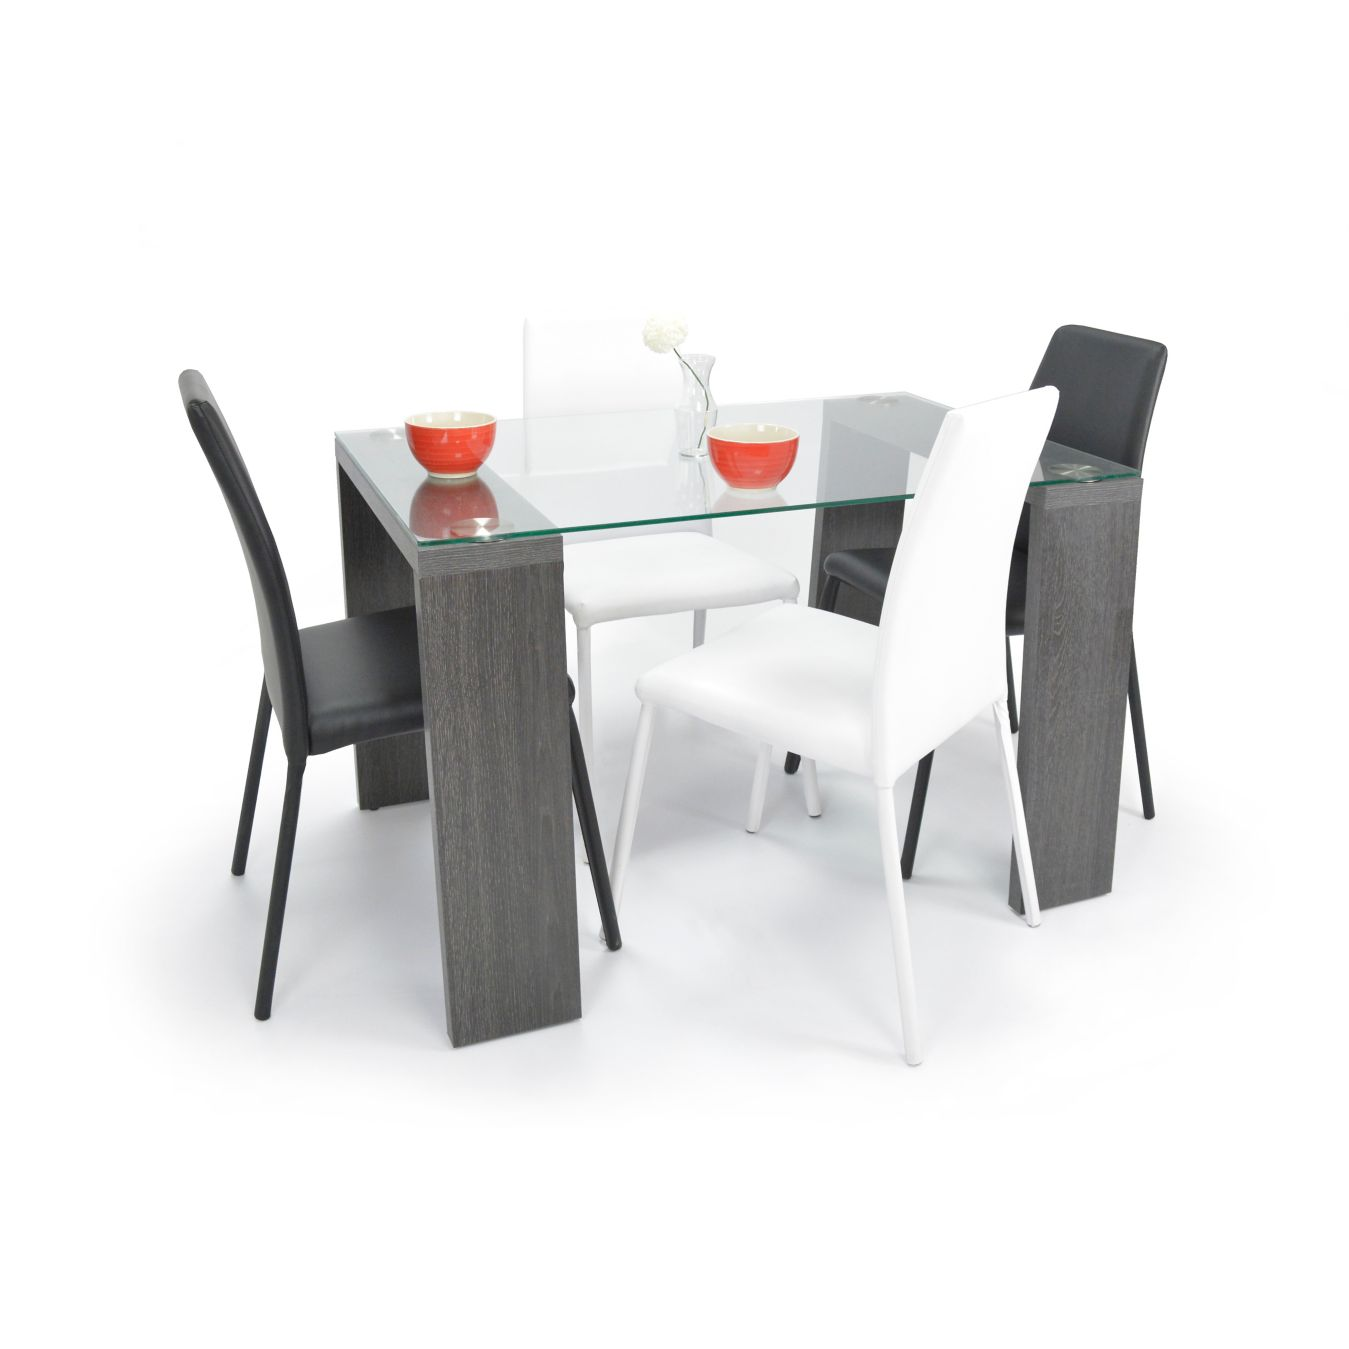 Sp vd set comedor 4pmilan negro negro bl   homecenter.com.co